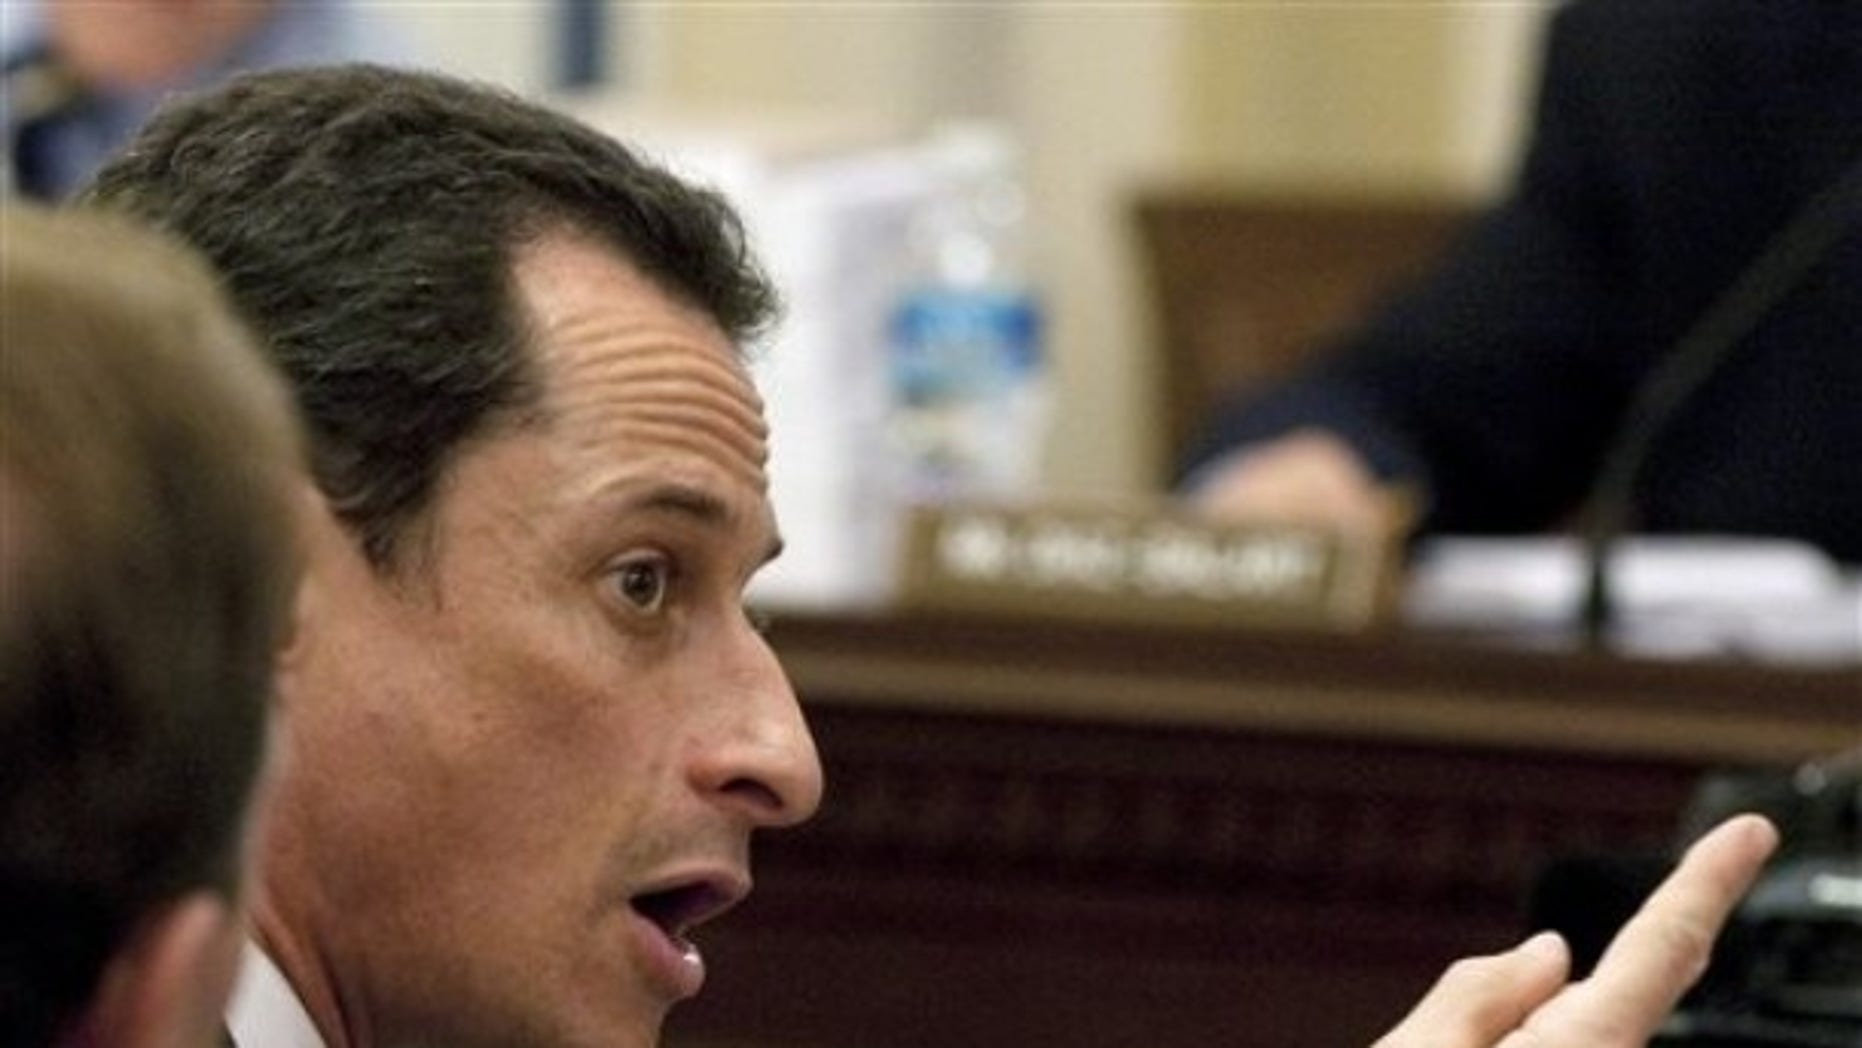 Rep. Anthony Weiner, D-NY, during the House Rules Committee meeting on Capitol Hill in Washington, Saturday, March 20, 2010. (AP)